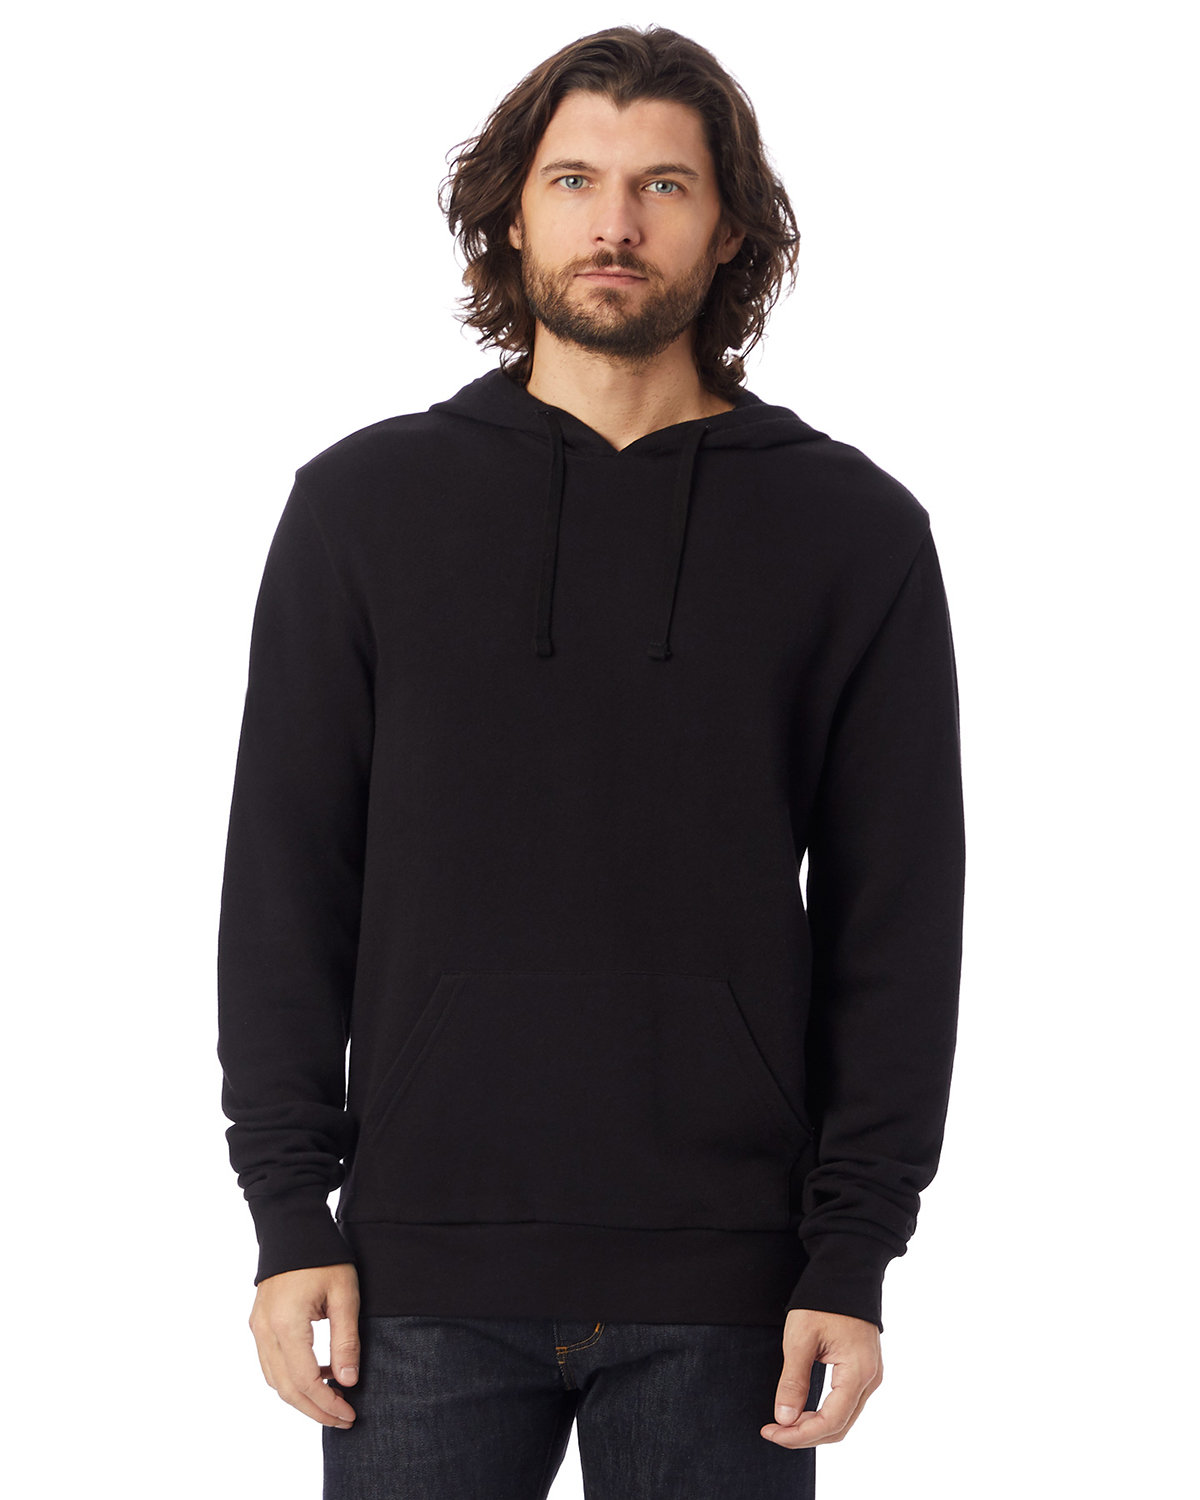 Alternative Unisex 6.5 oz., Challenger Washed French Terry Pullover Hooded Sweatshirt BLACK